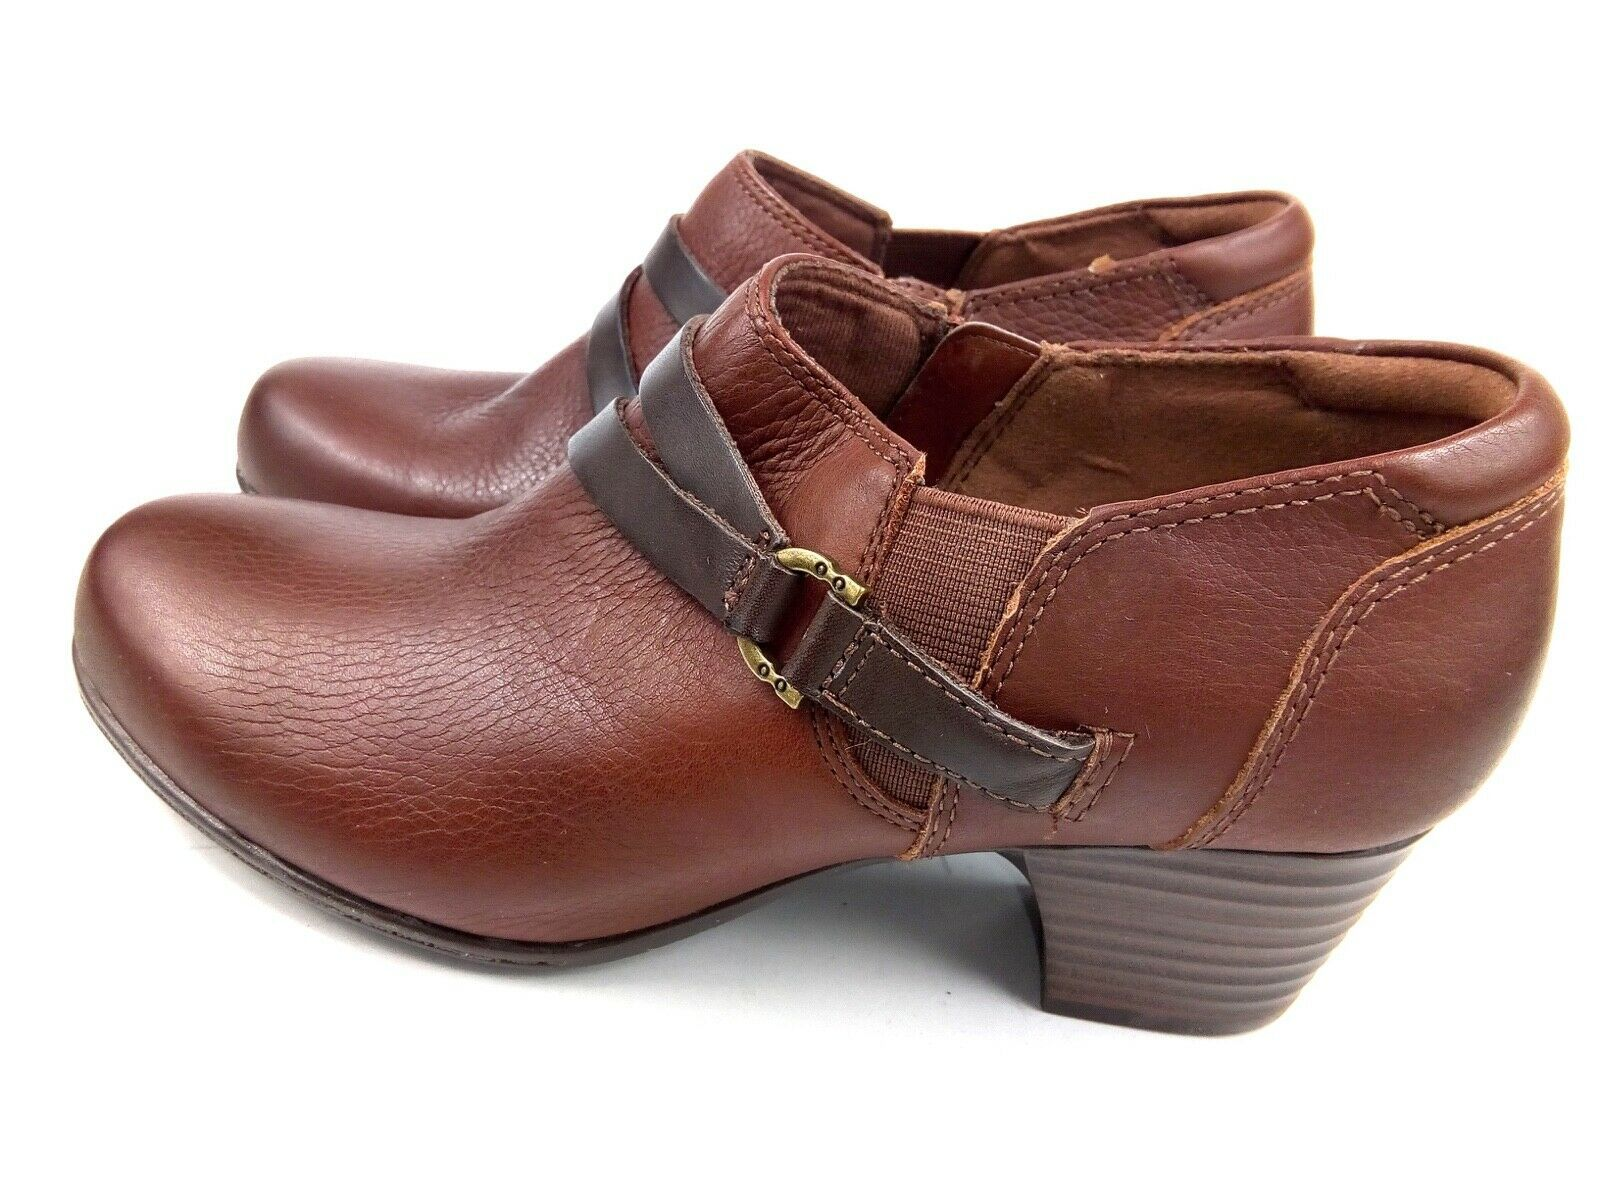 Clarks Women's Booties Collection Soft Cushion Brown Leather Ankle Boots Sz 6 image 5